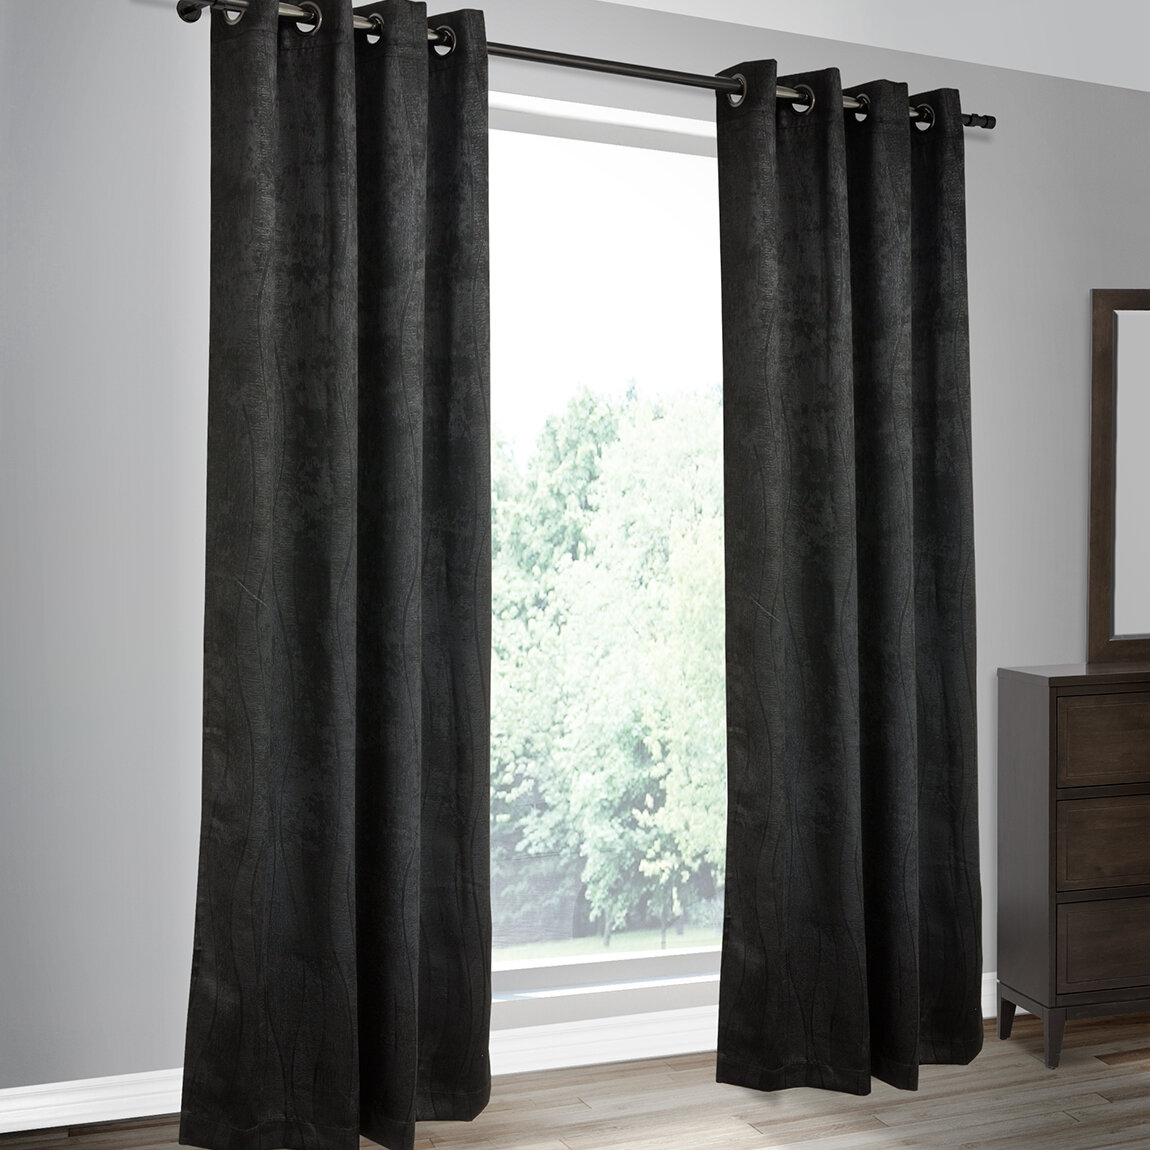 Calorafield Woven Solid Blackout Thermal Grommet Curtain Panels Intended For Embossed Thermal Weaved Blackout Grommet Drapery Curtains (View 18 of 20)